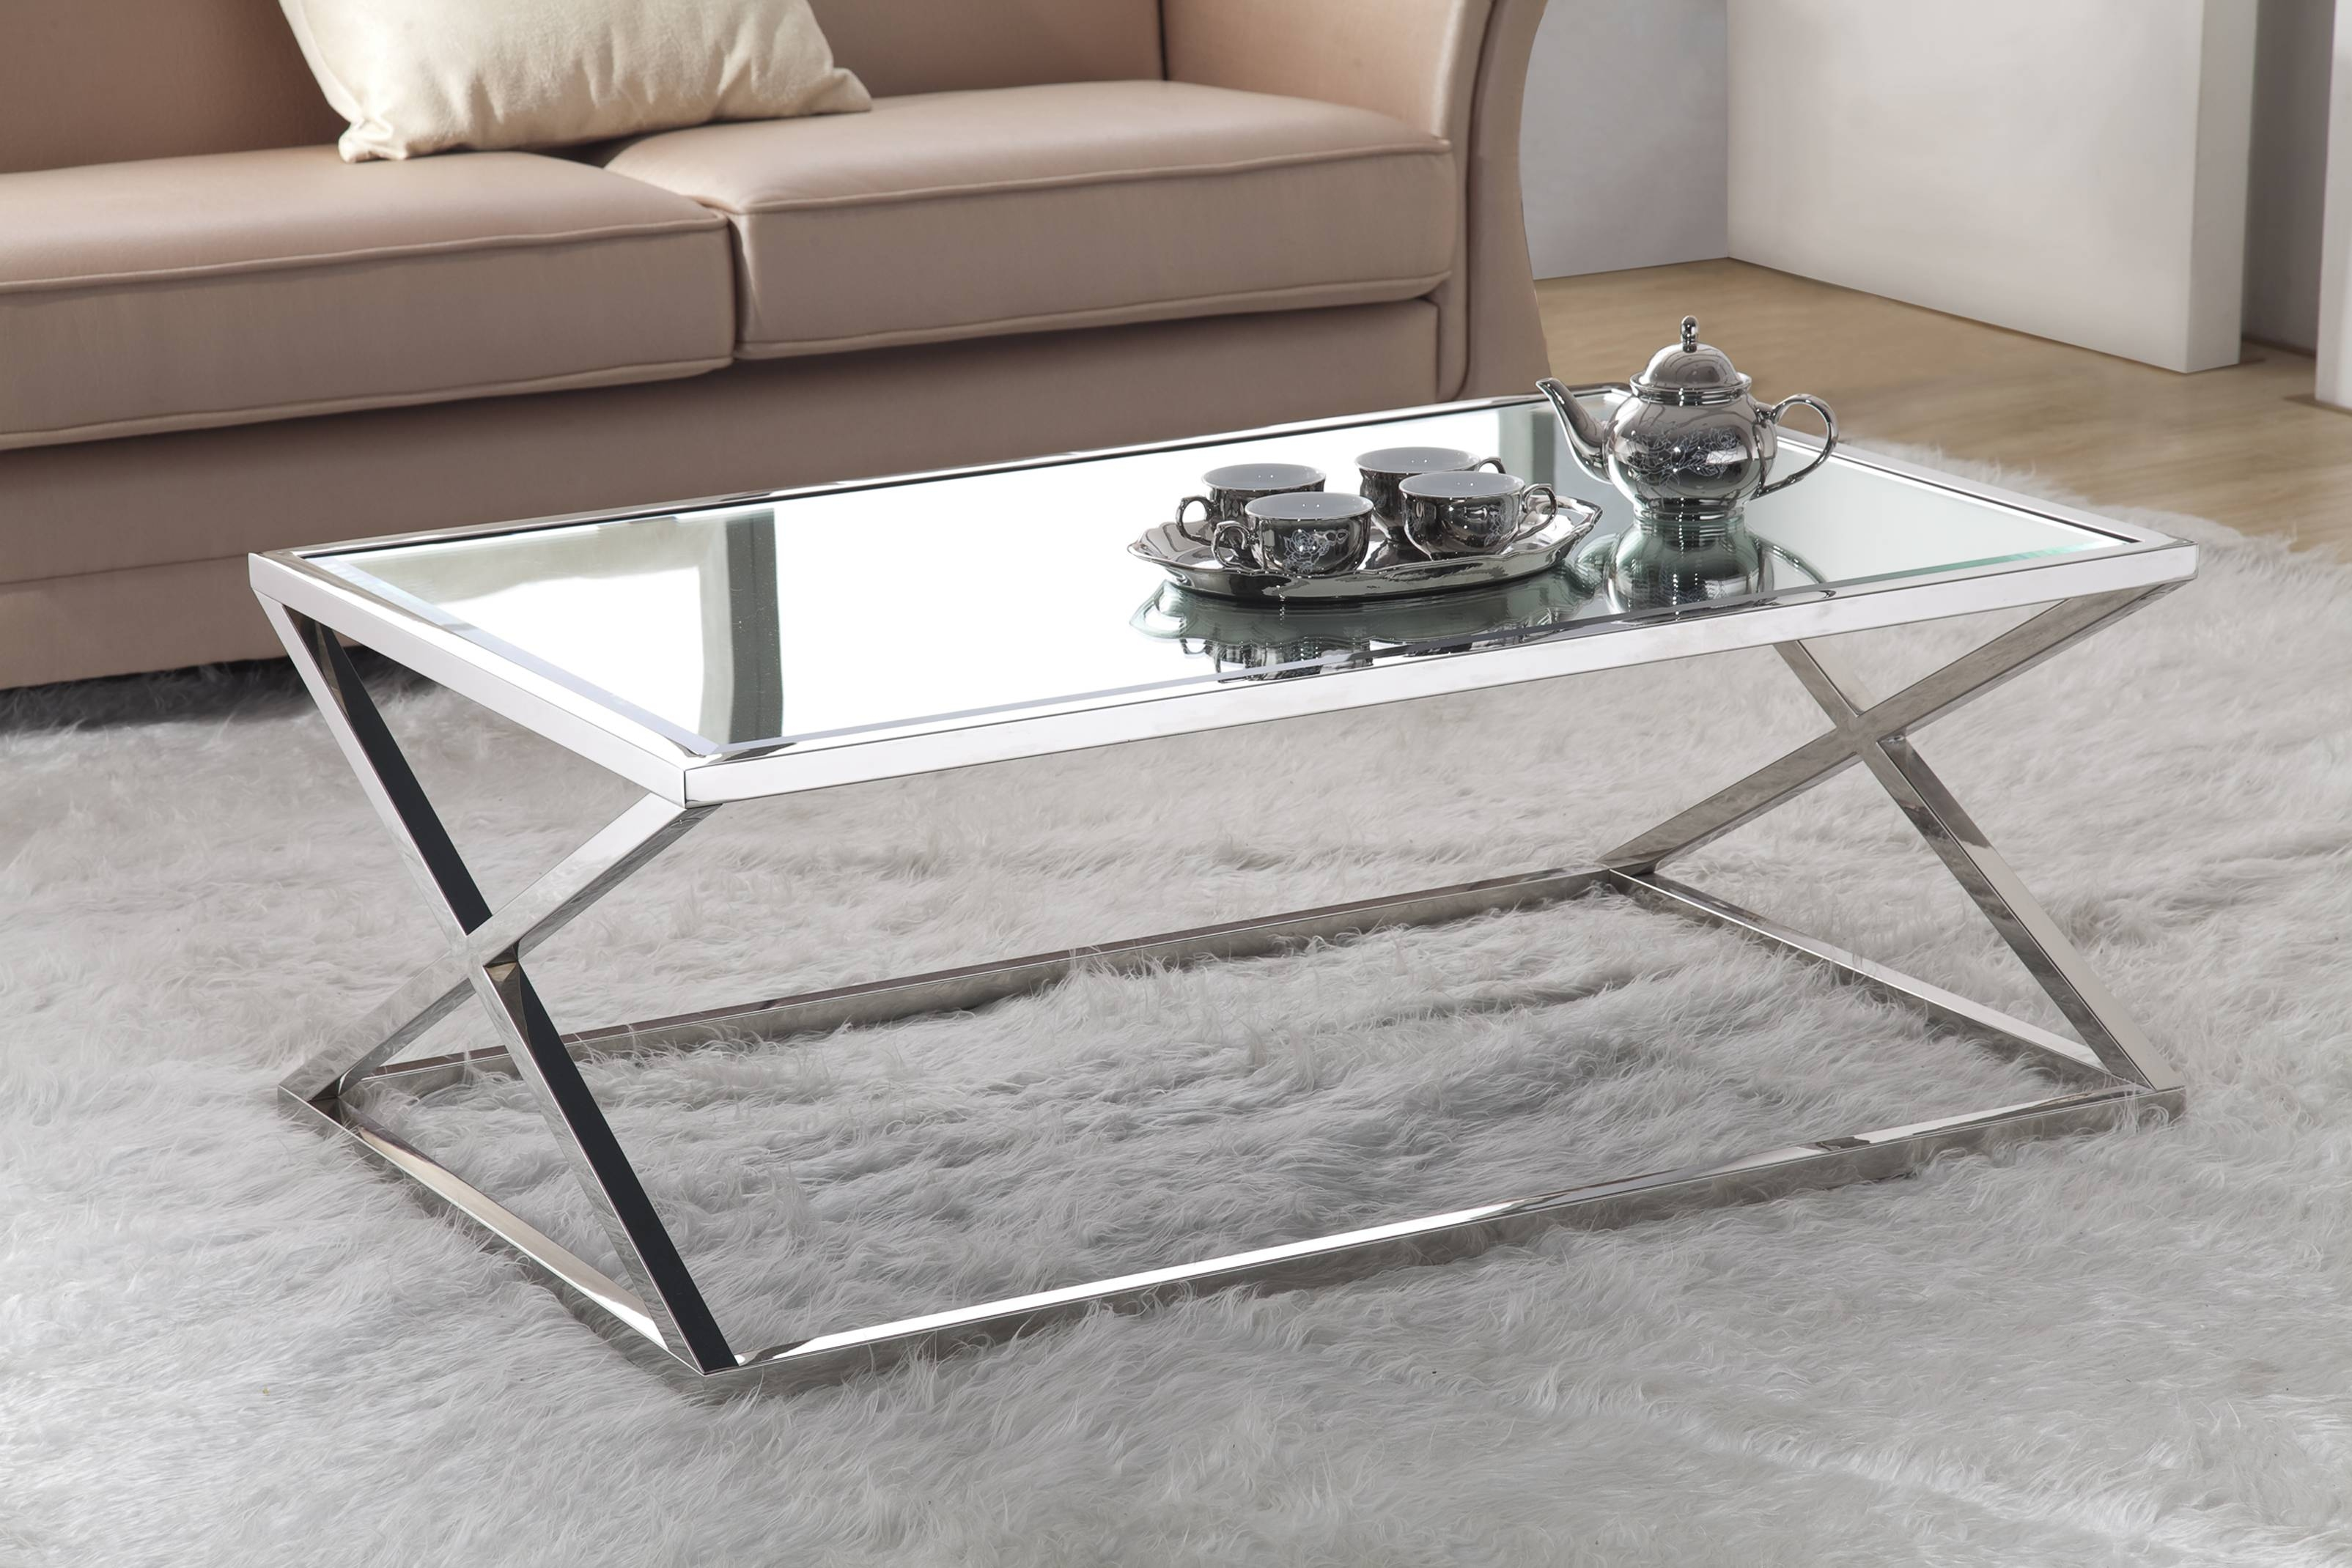 Image gallery of chrome leg coffee tables view 12 of 30 photos cheap 3 piece metal glass coffee table set black cheap 3 piece within chrome leg coffee geotapseo Image collections